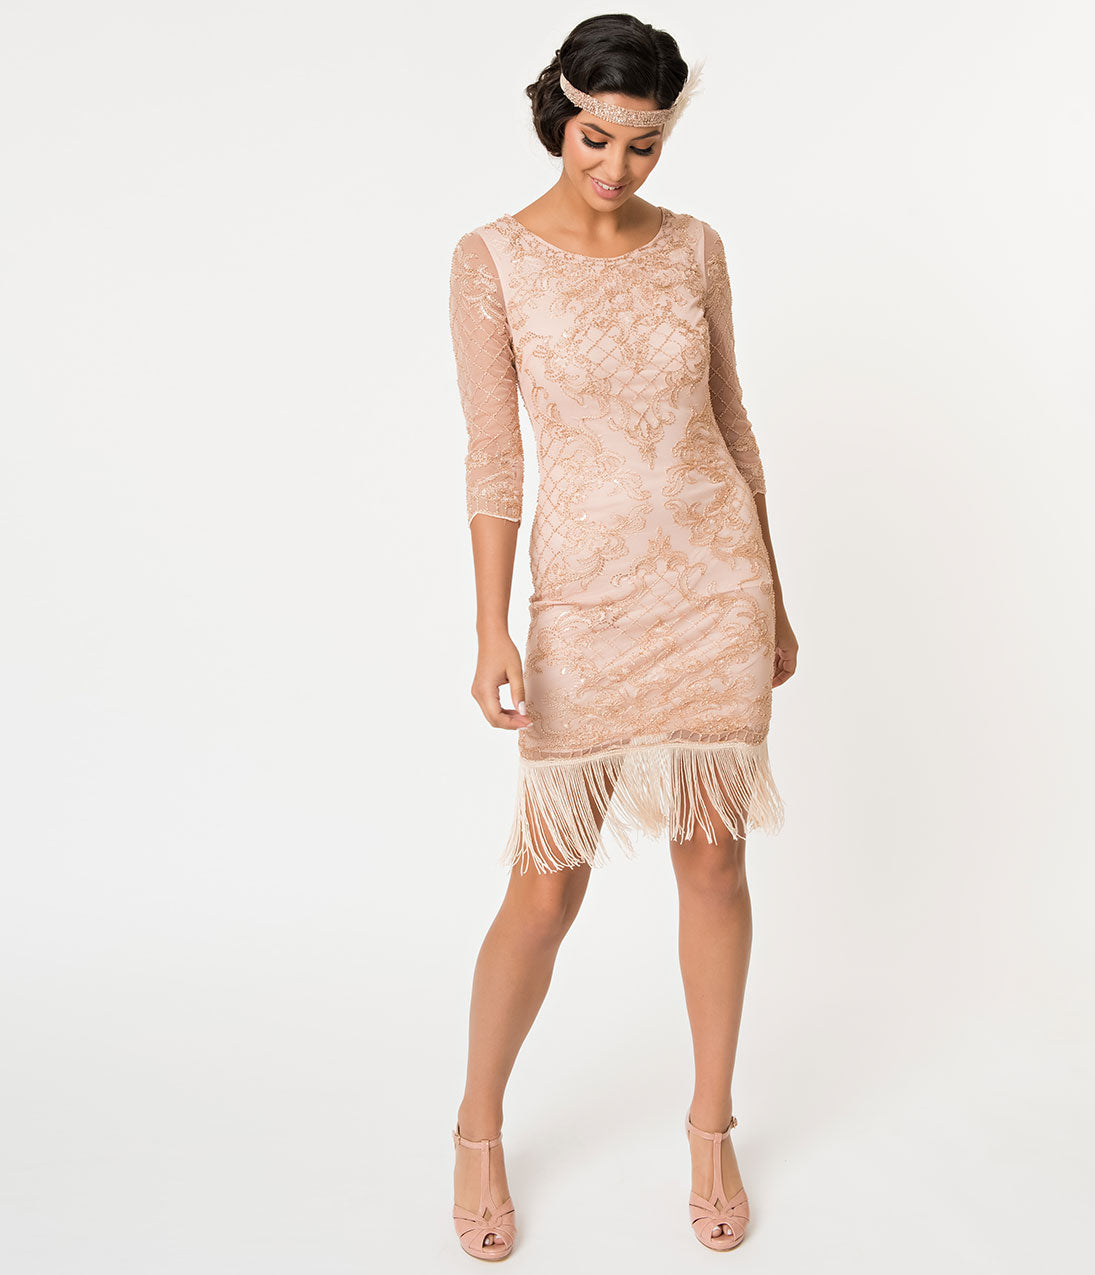 20s Dresses | 1920s Dresses for Sale 1920S Style Rose Pink  Gold Beaded Sleeved Fringe Flapper Dress $110.00 AT vintagedancer.com